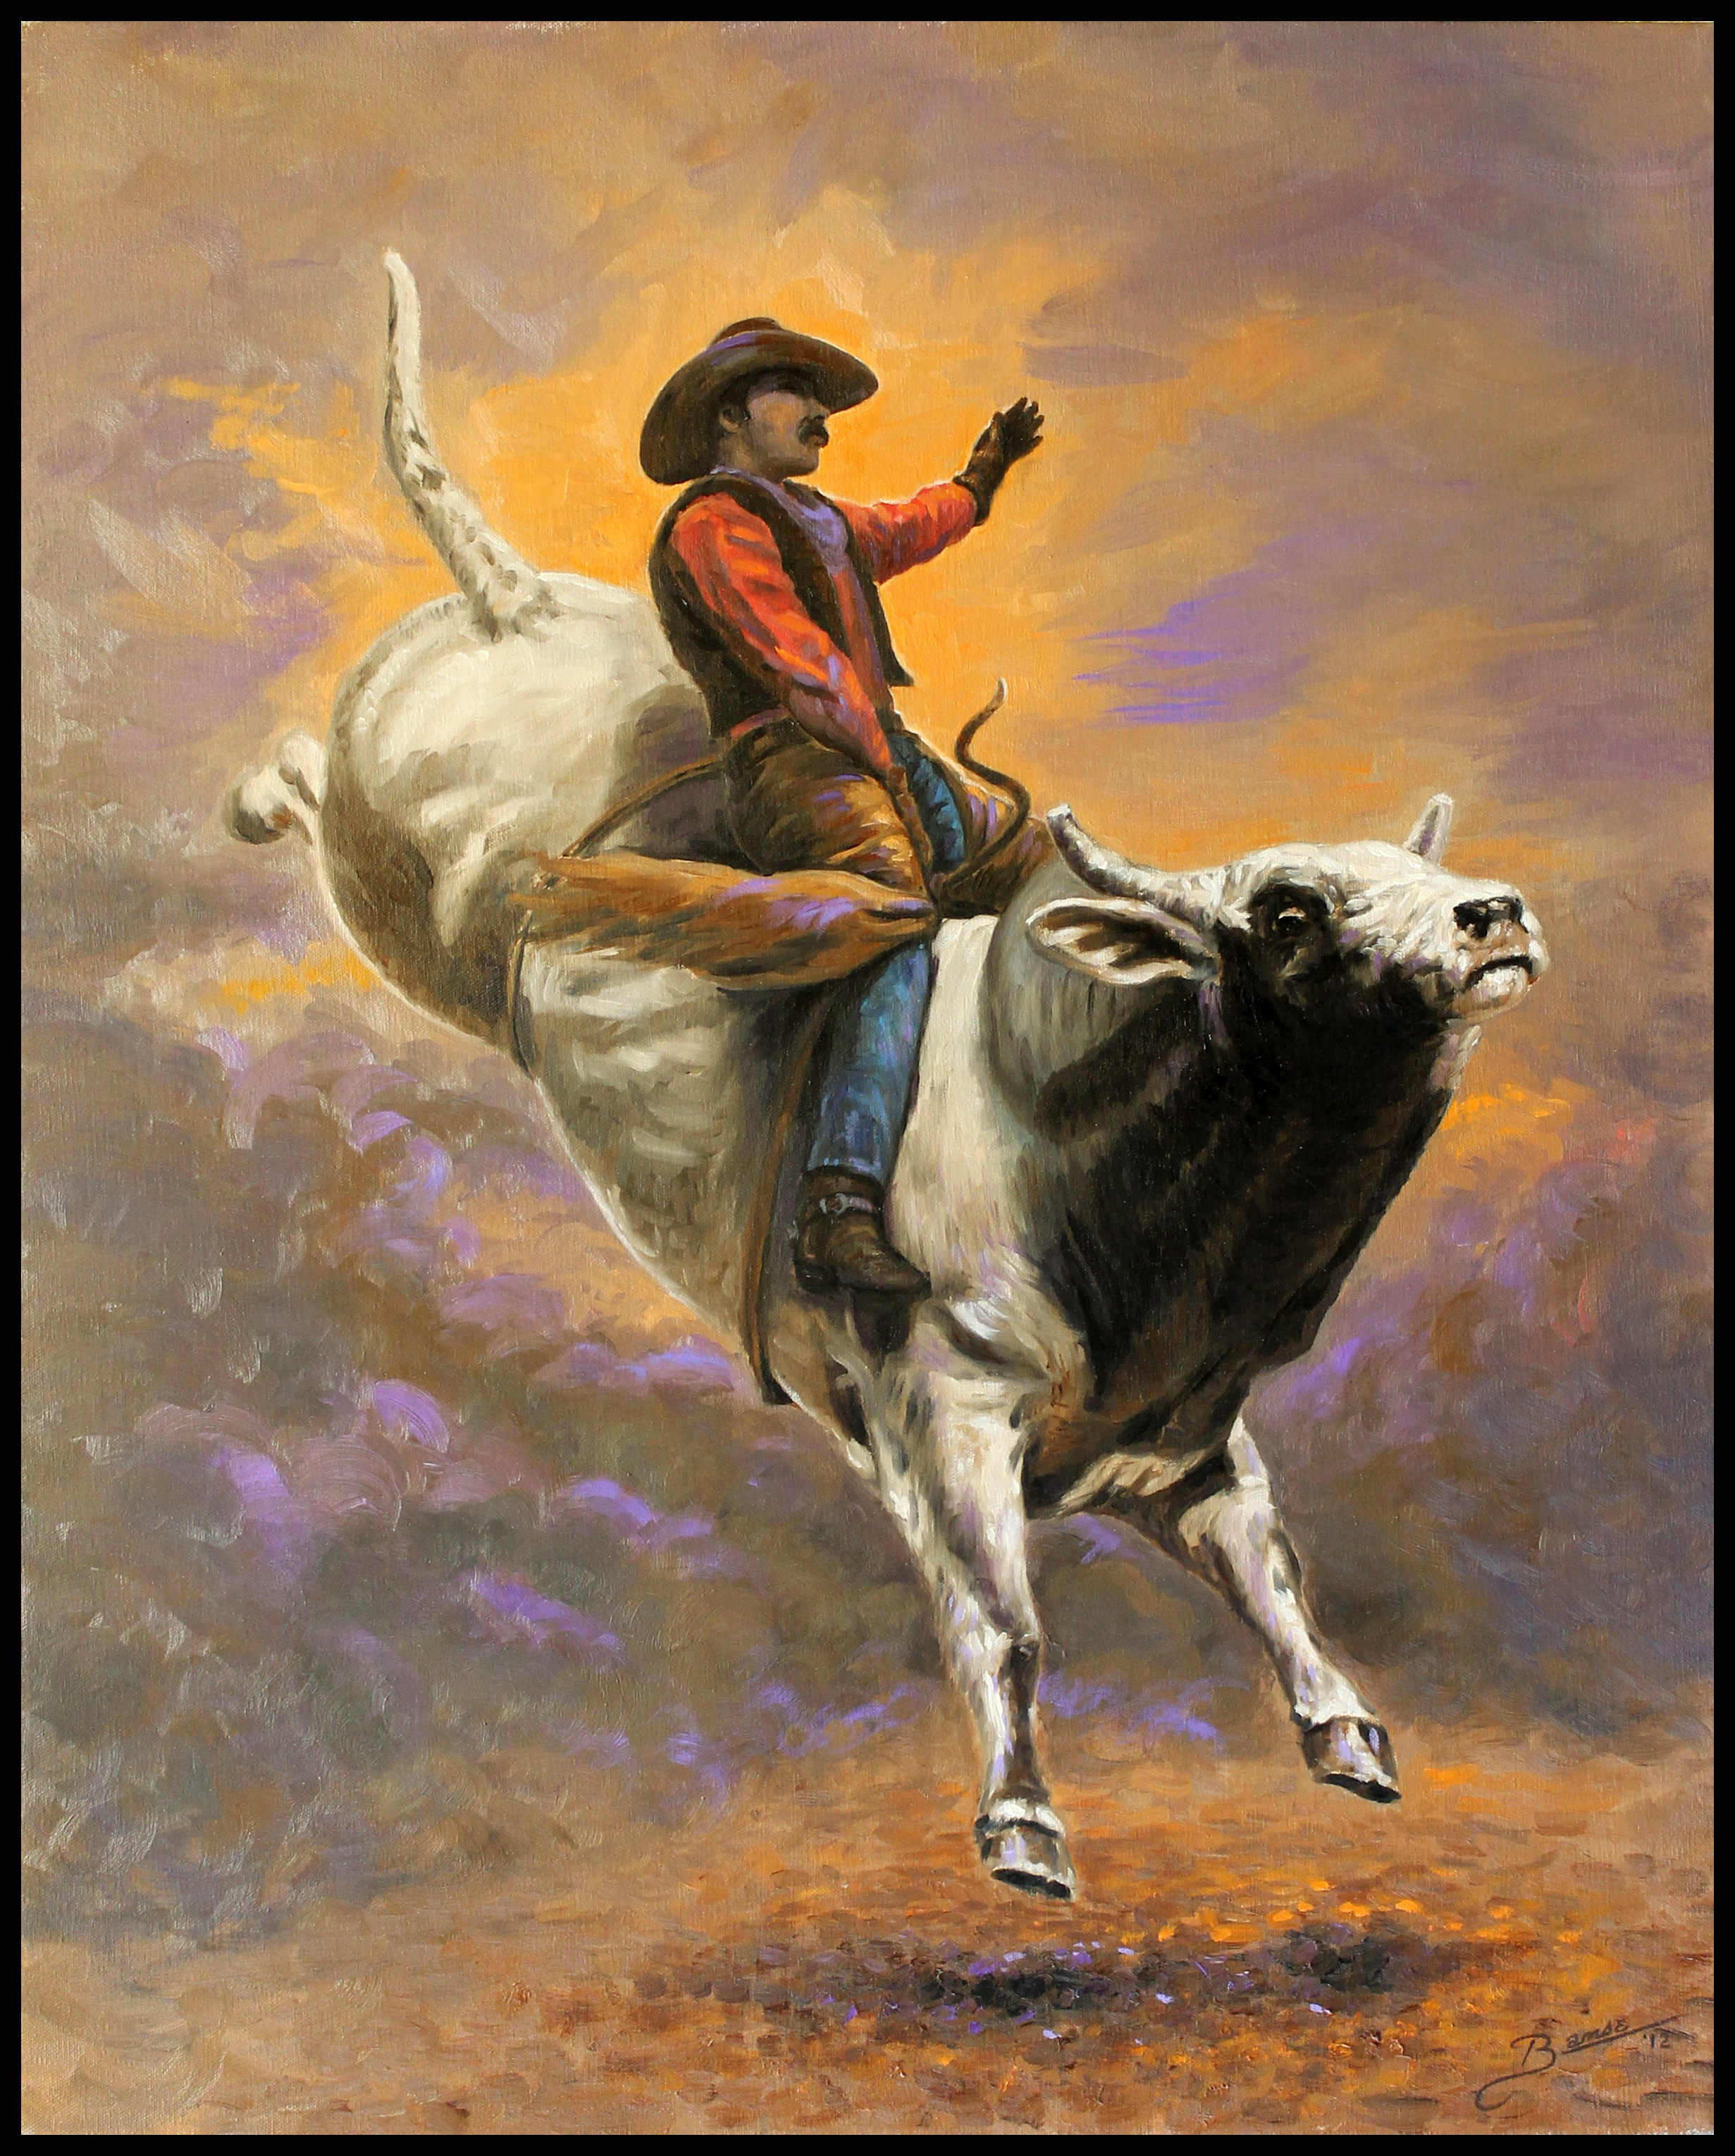 Bull Rider ( 2012 - 24 x 30 Oil On Canvas )